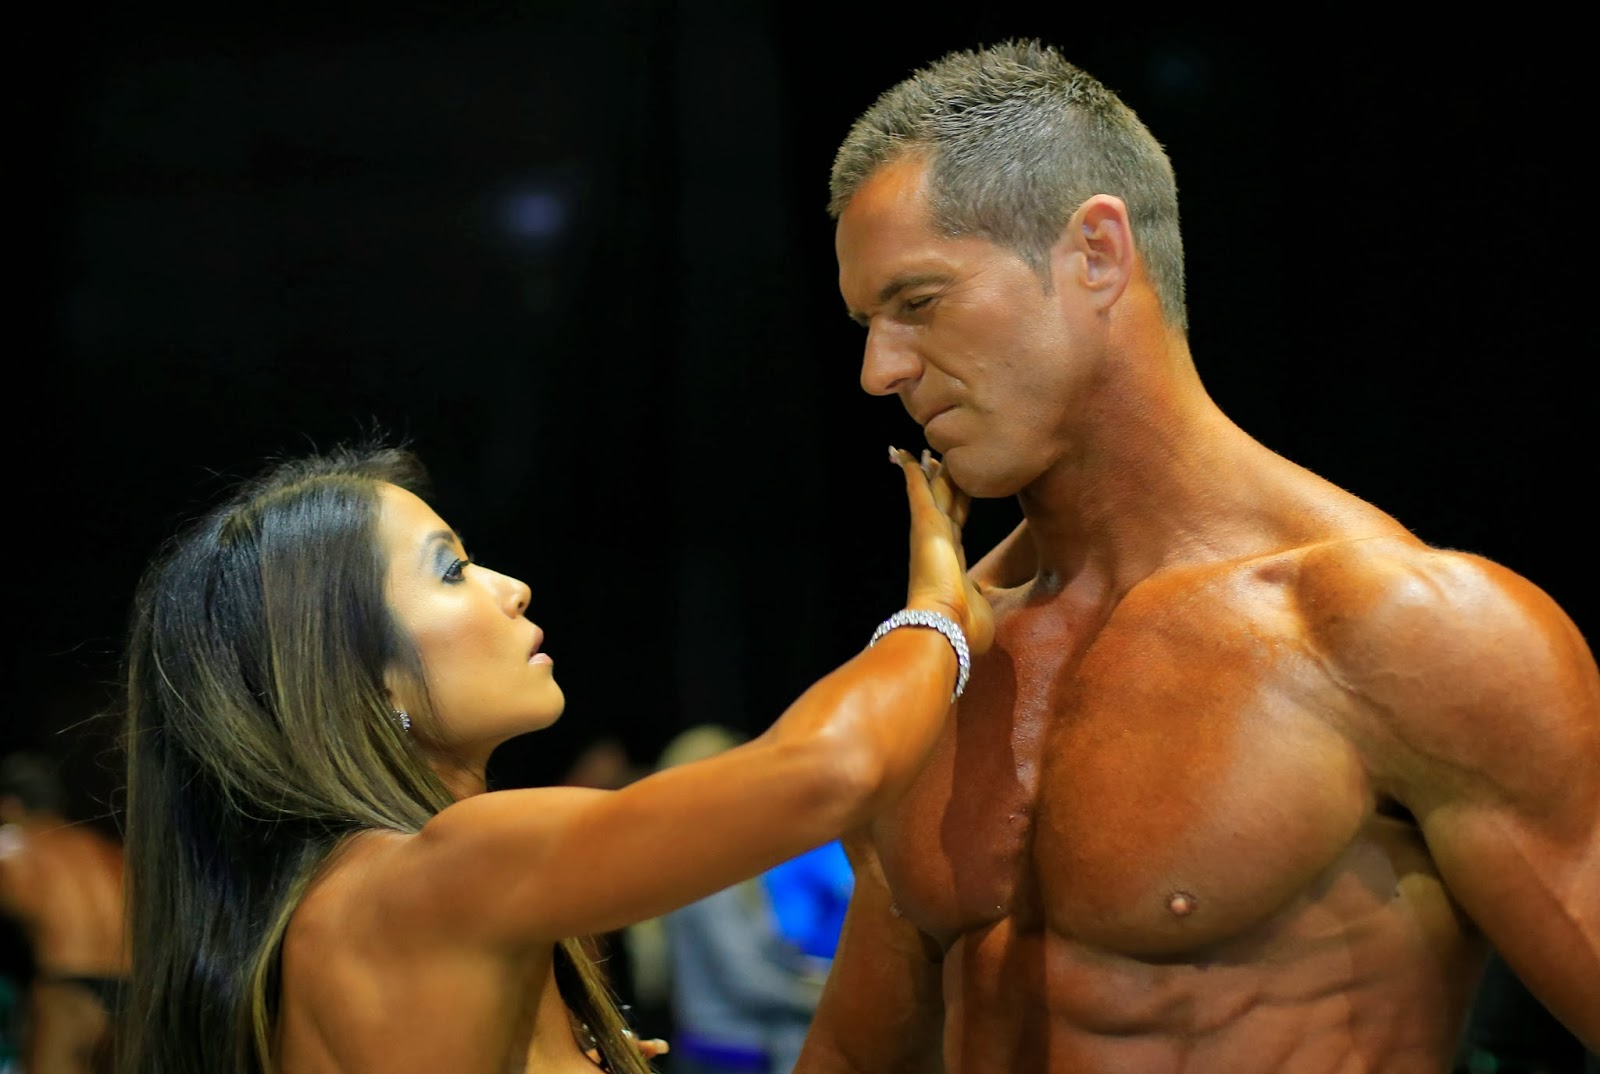 Bikini-Fitness World Cup, Bodybuilding, Italy, Men's Classic Bodybuilding, South Africa, Sports, St Polten, Women, World Classic Bodybuilding Championship,